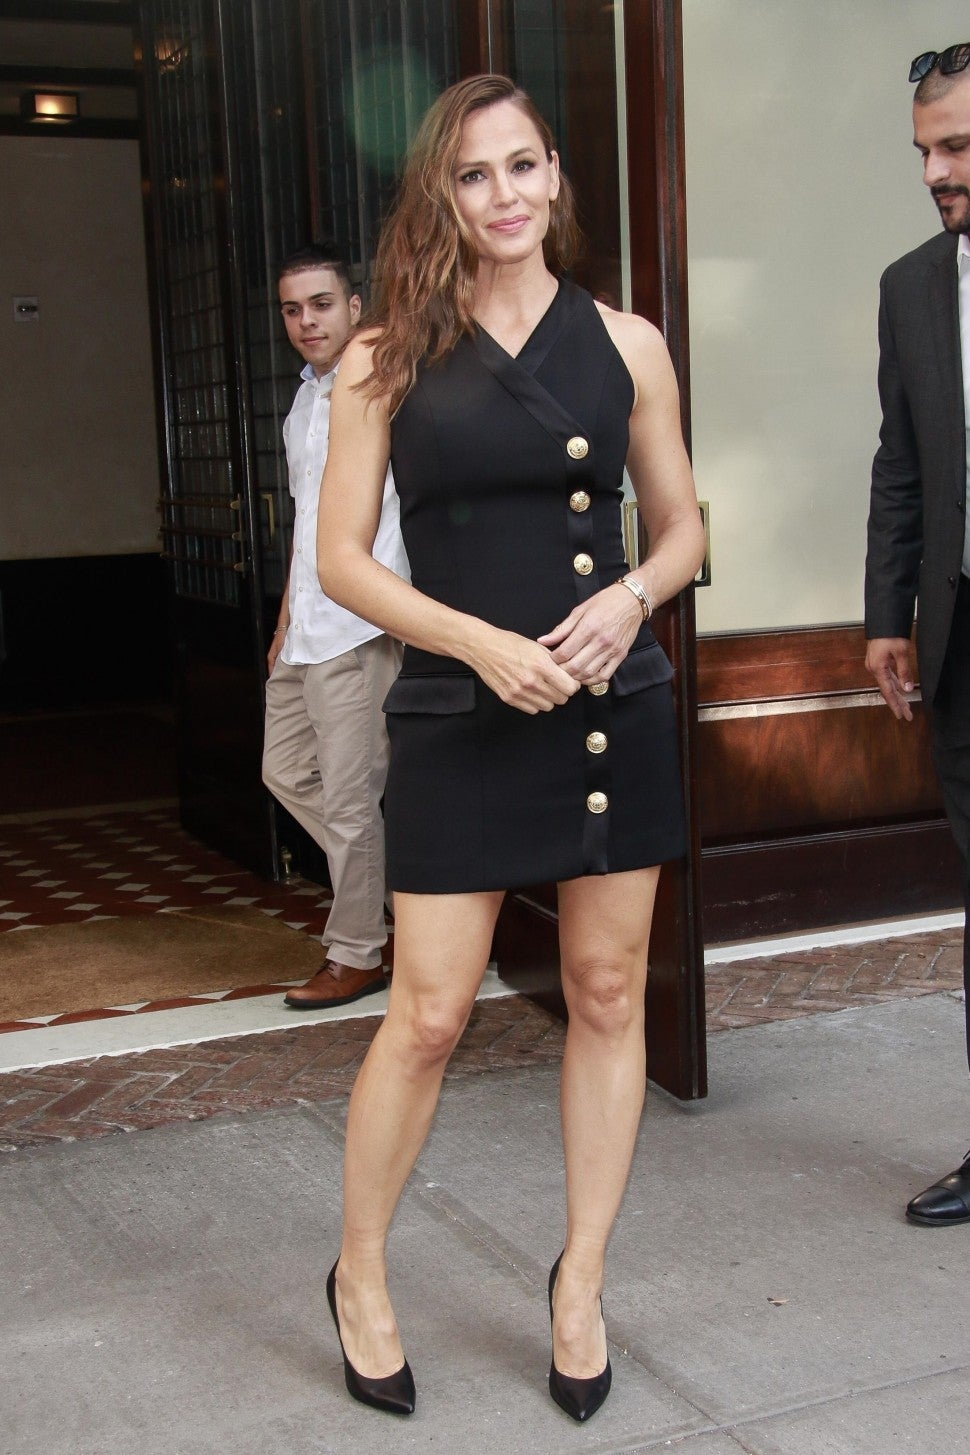 Jennifer Garner Turns Heads in LBD While Out in NYC -- See